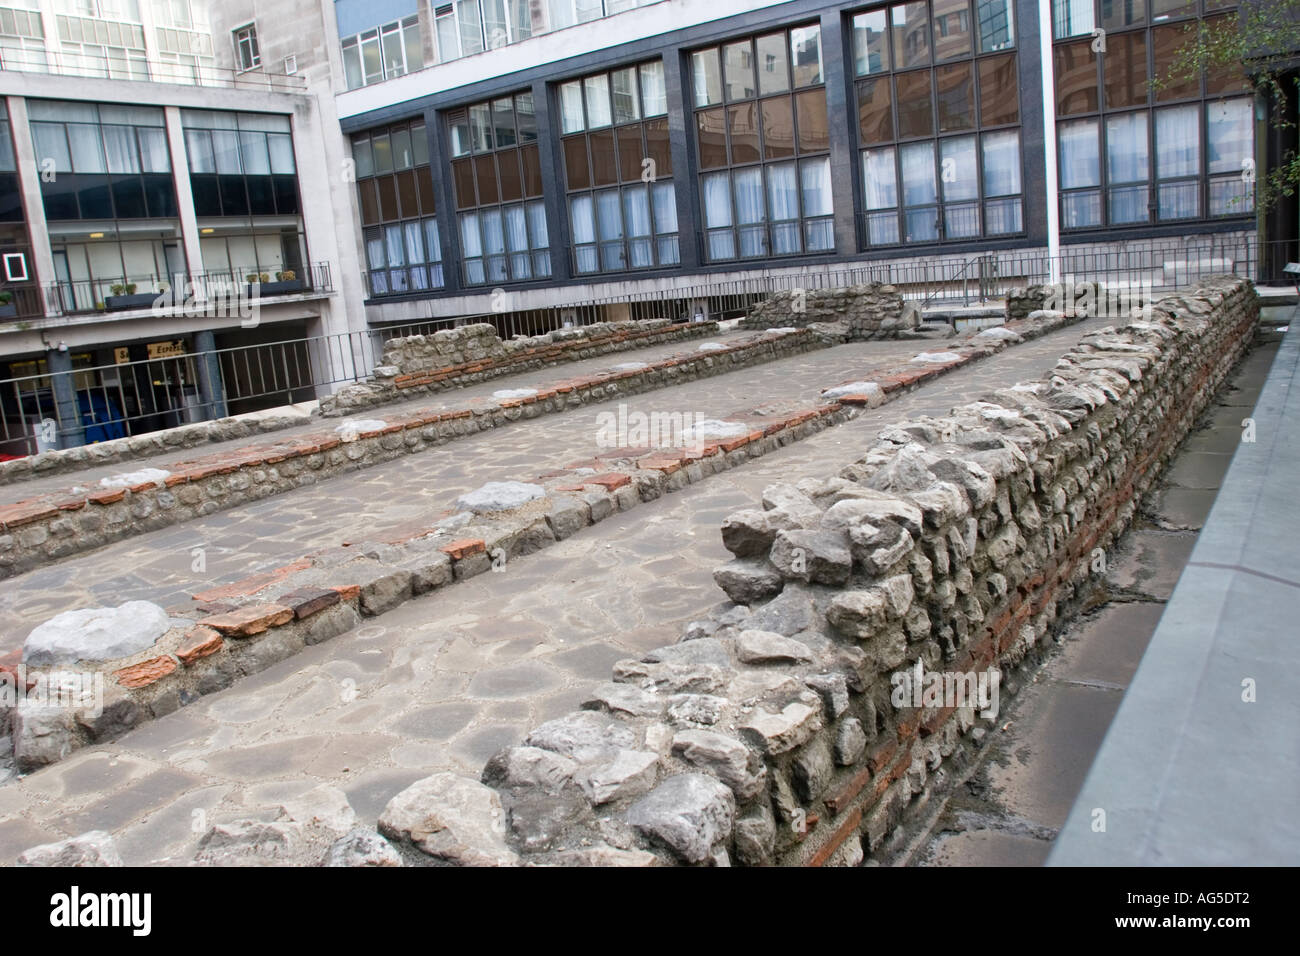 Ruins of the Temple of Mithras in Queen Victoria Street in the City of London GB UK - Stock Image